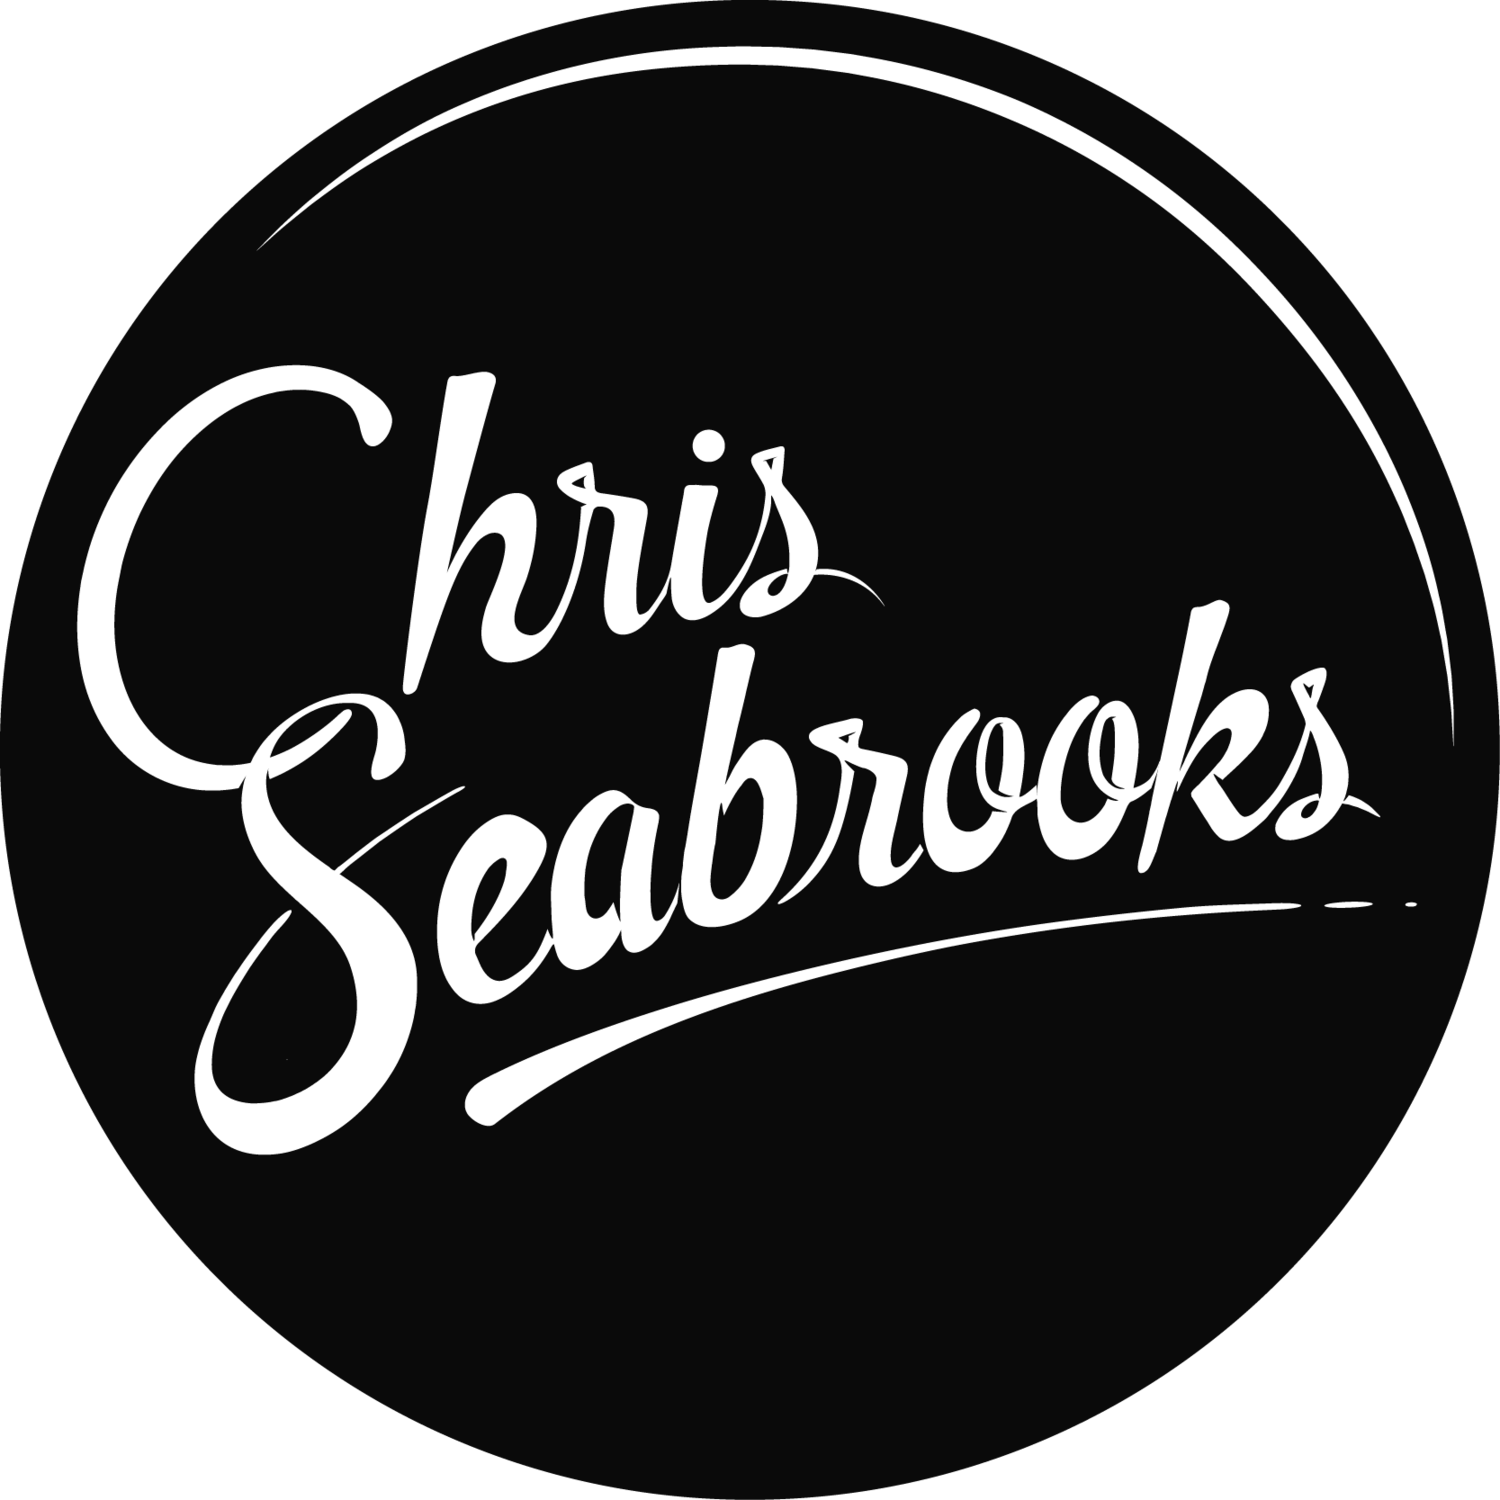 Chris Seabrooks